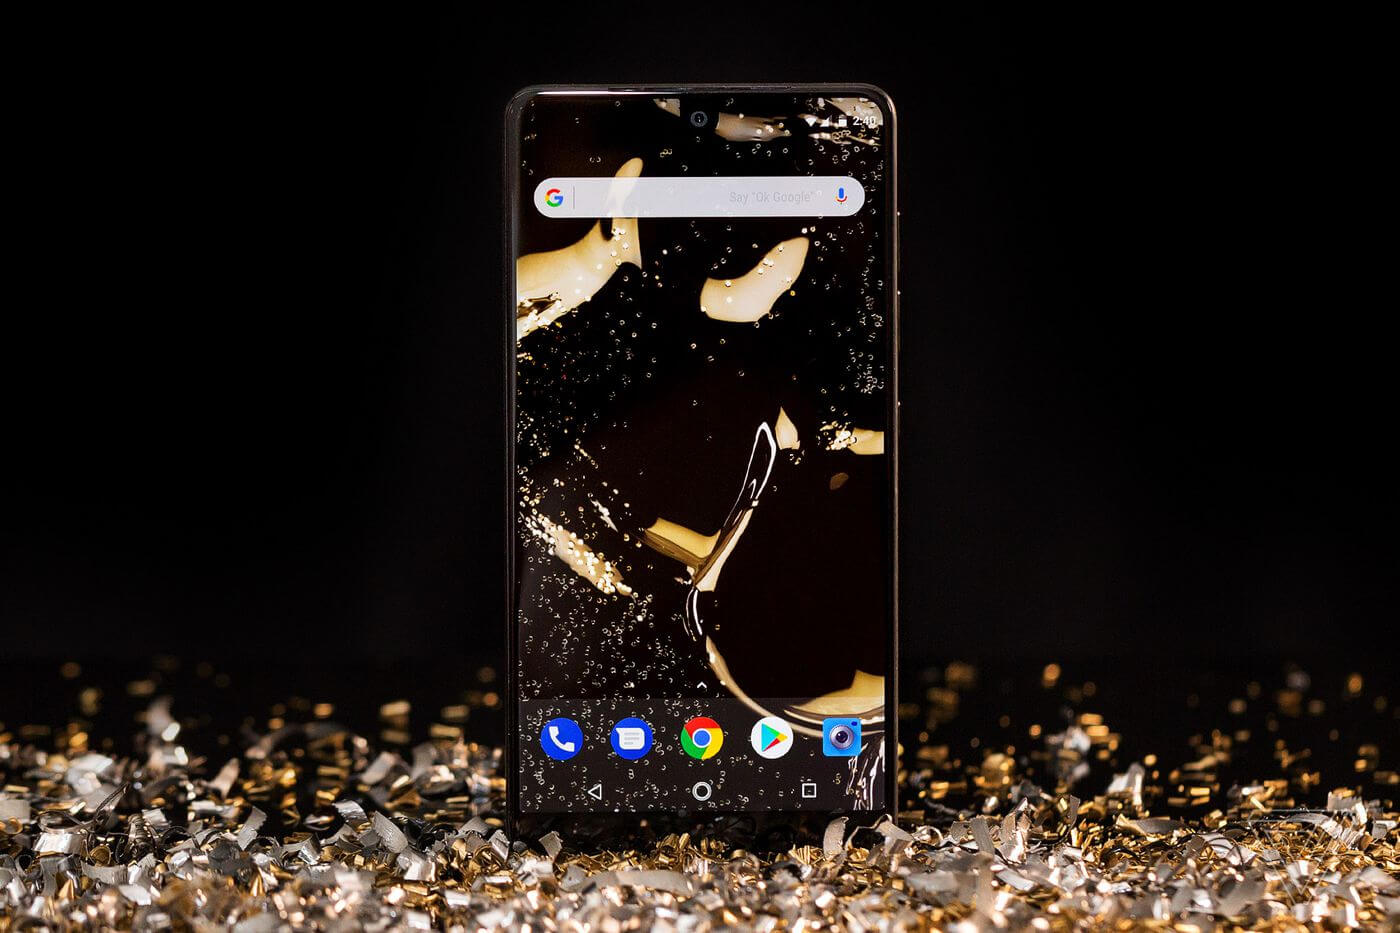 Essential lays off 30% of its workers across key departments